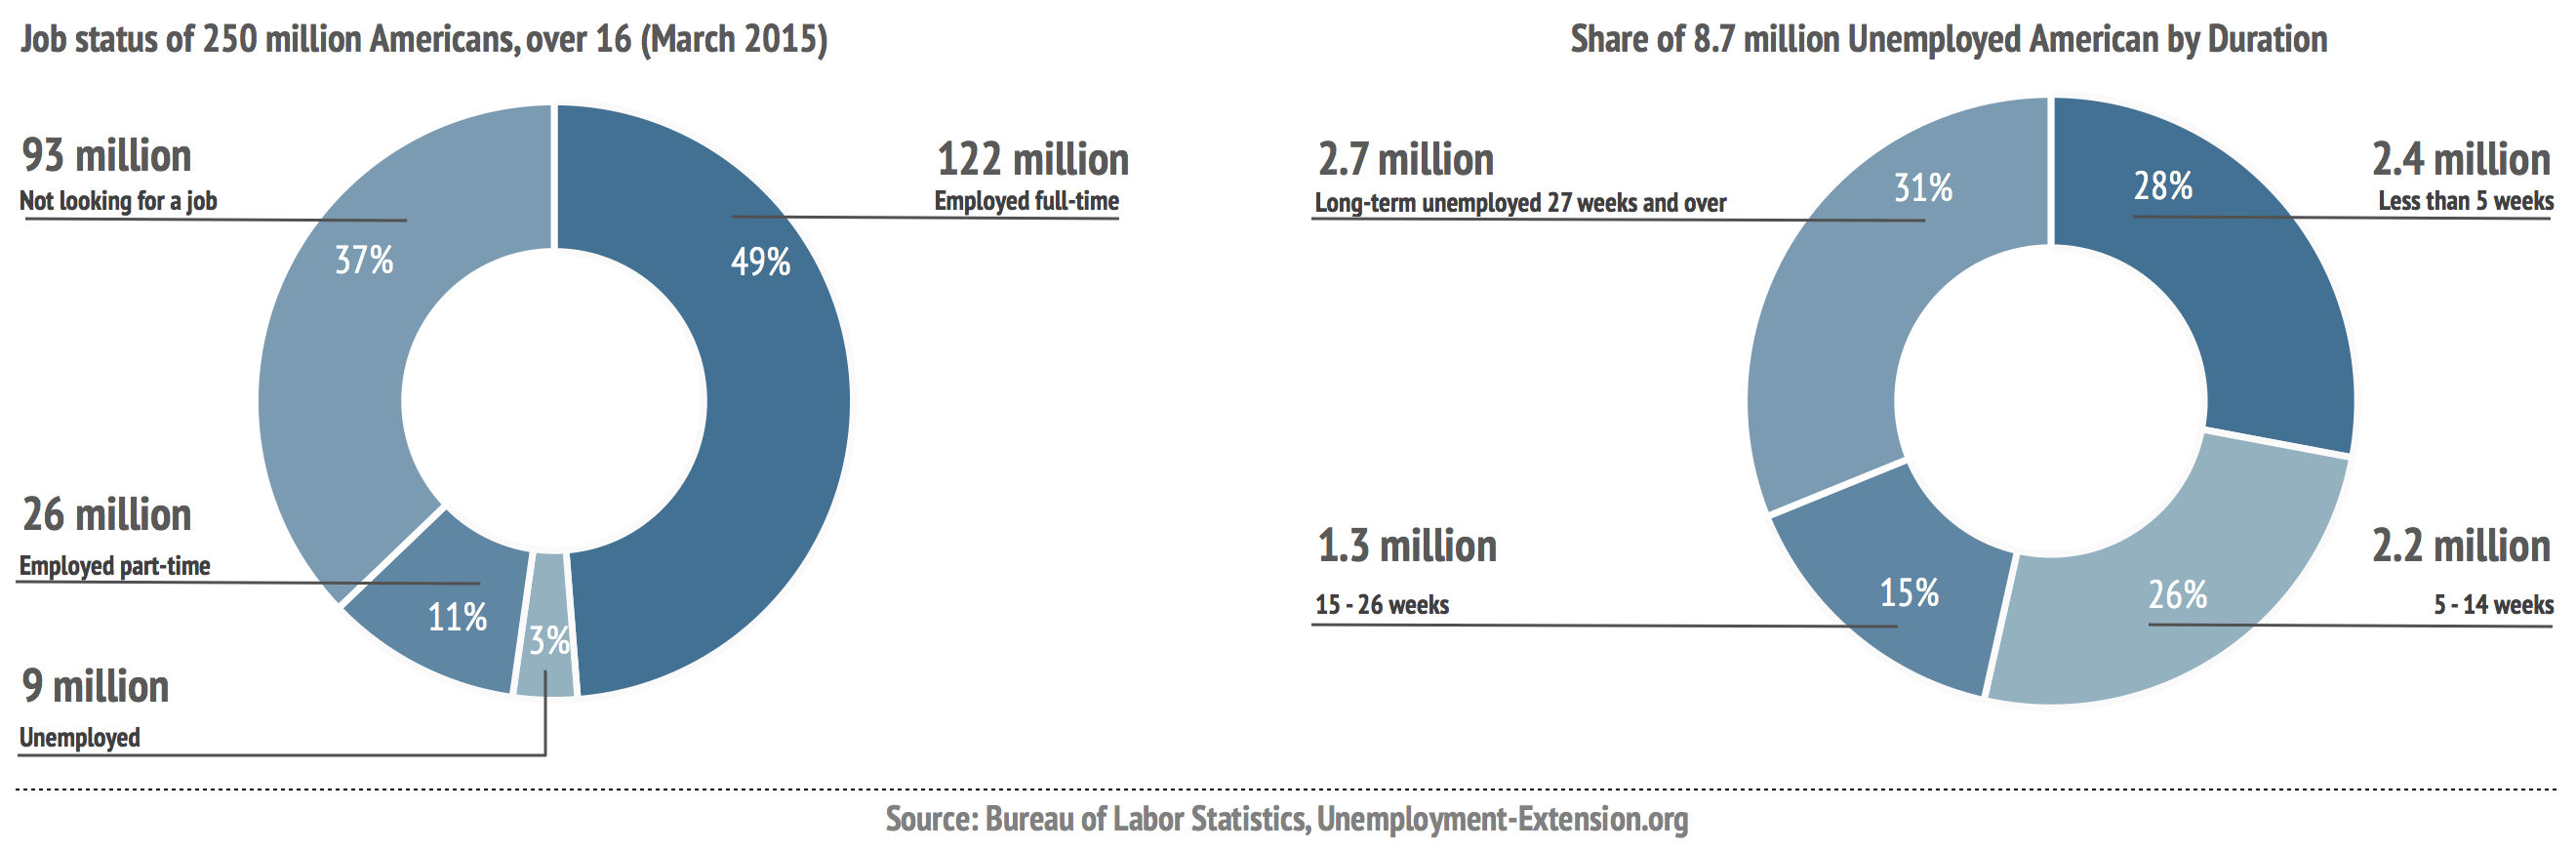 Job status of 250 million Americans, over 16, March 2015